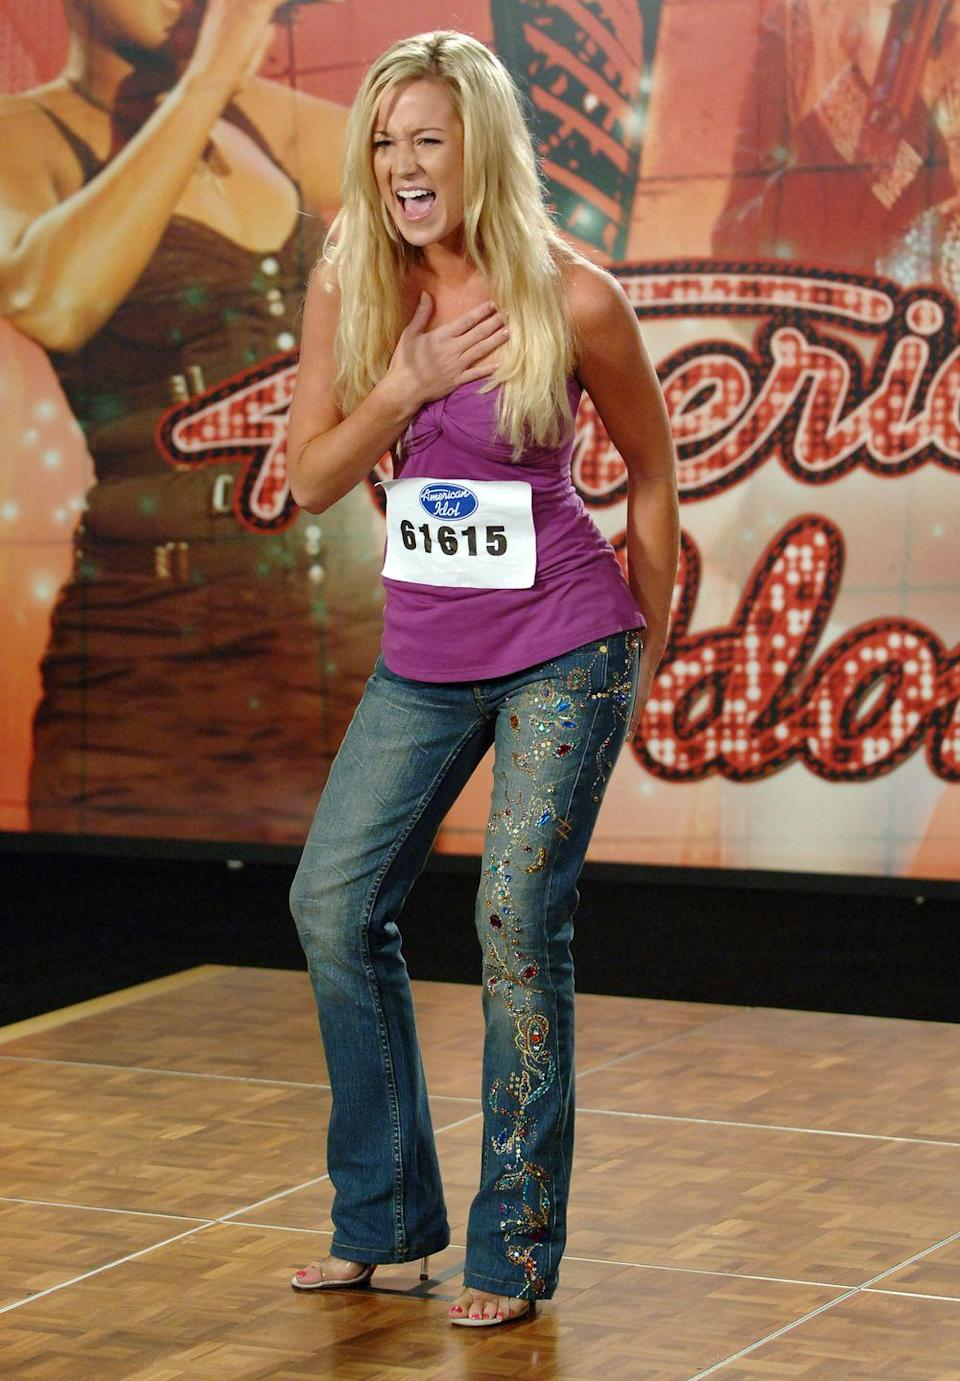 "<p>If you <em>do </em>get a callback, your second round audition is for producers and they're the ones who ultimately decide if you get a <a href=""https://www.today.com/popculture/american-idol-101-frequently-asked-questions-wbna22541241"" rel=""nofollow noopener"" target=""_blank"" data-ylk=""slk:judges panel audition"" class=""link rapid-noclick-resp"">judges panel audition</a> or not.</p>"